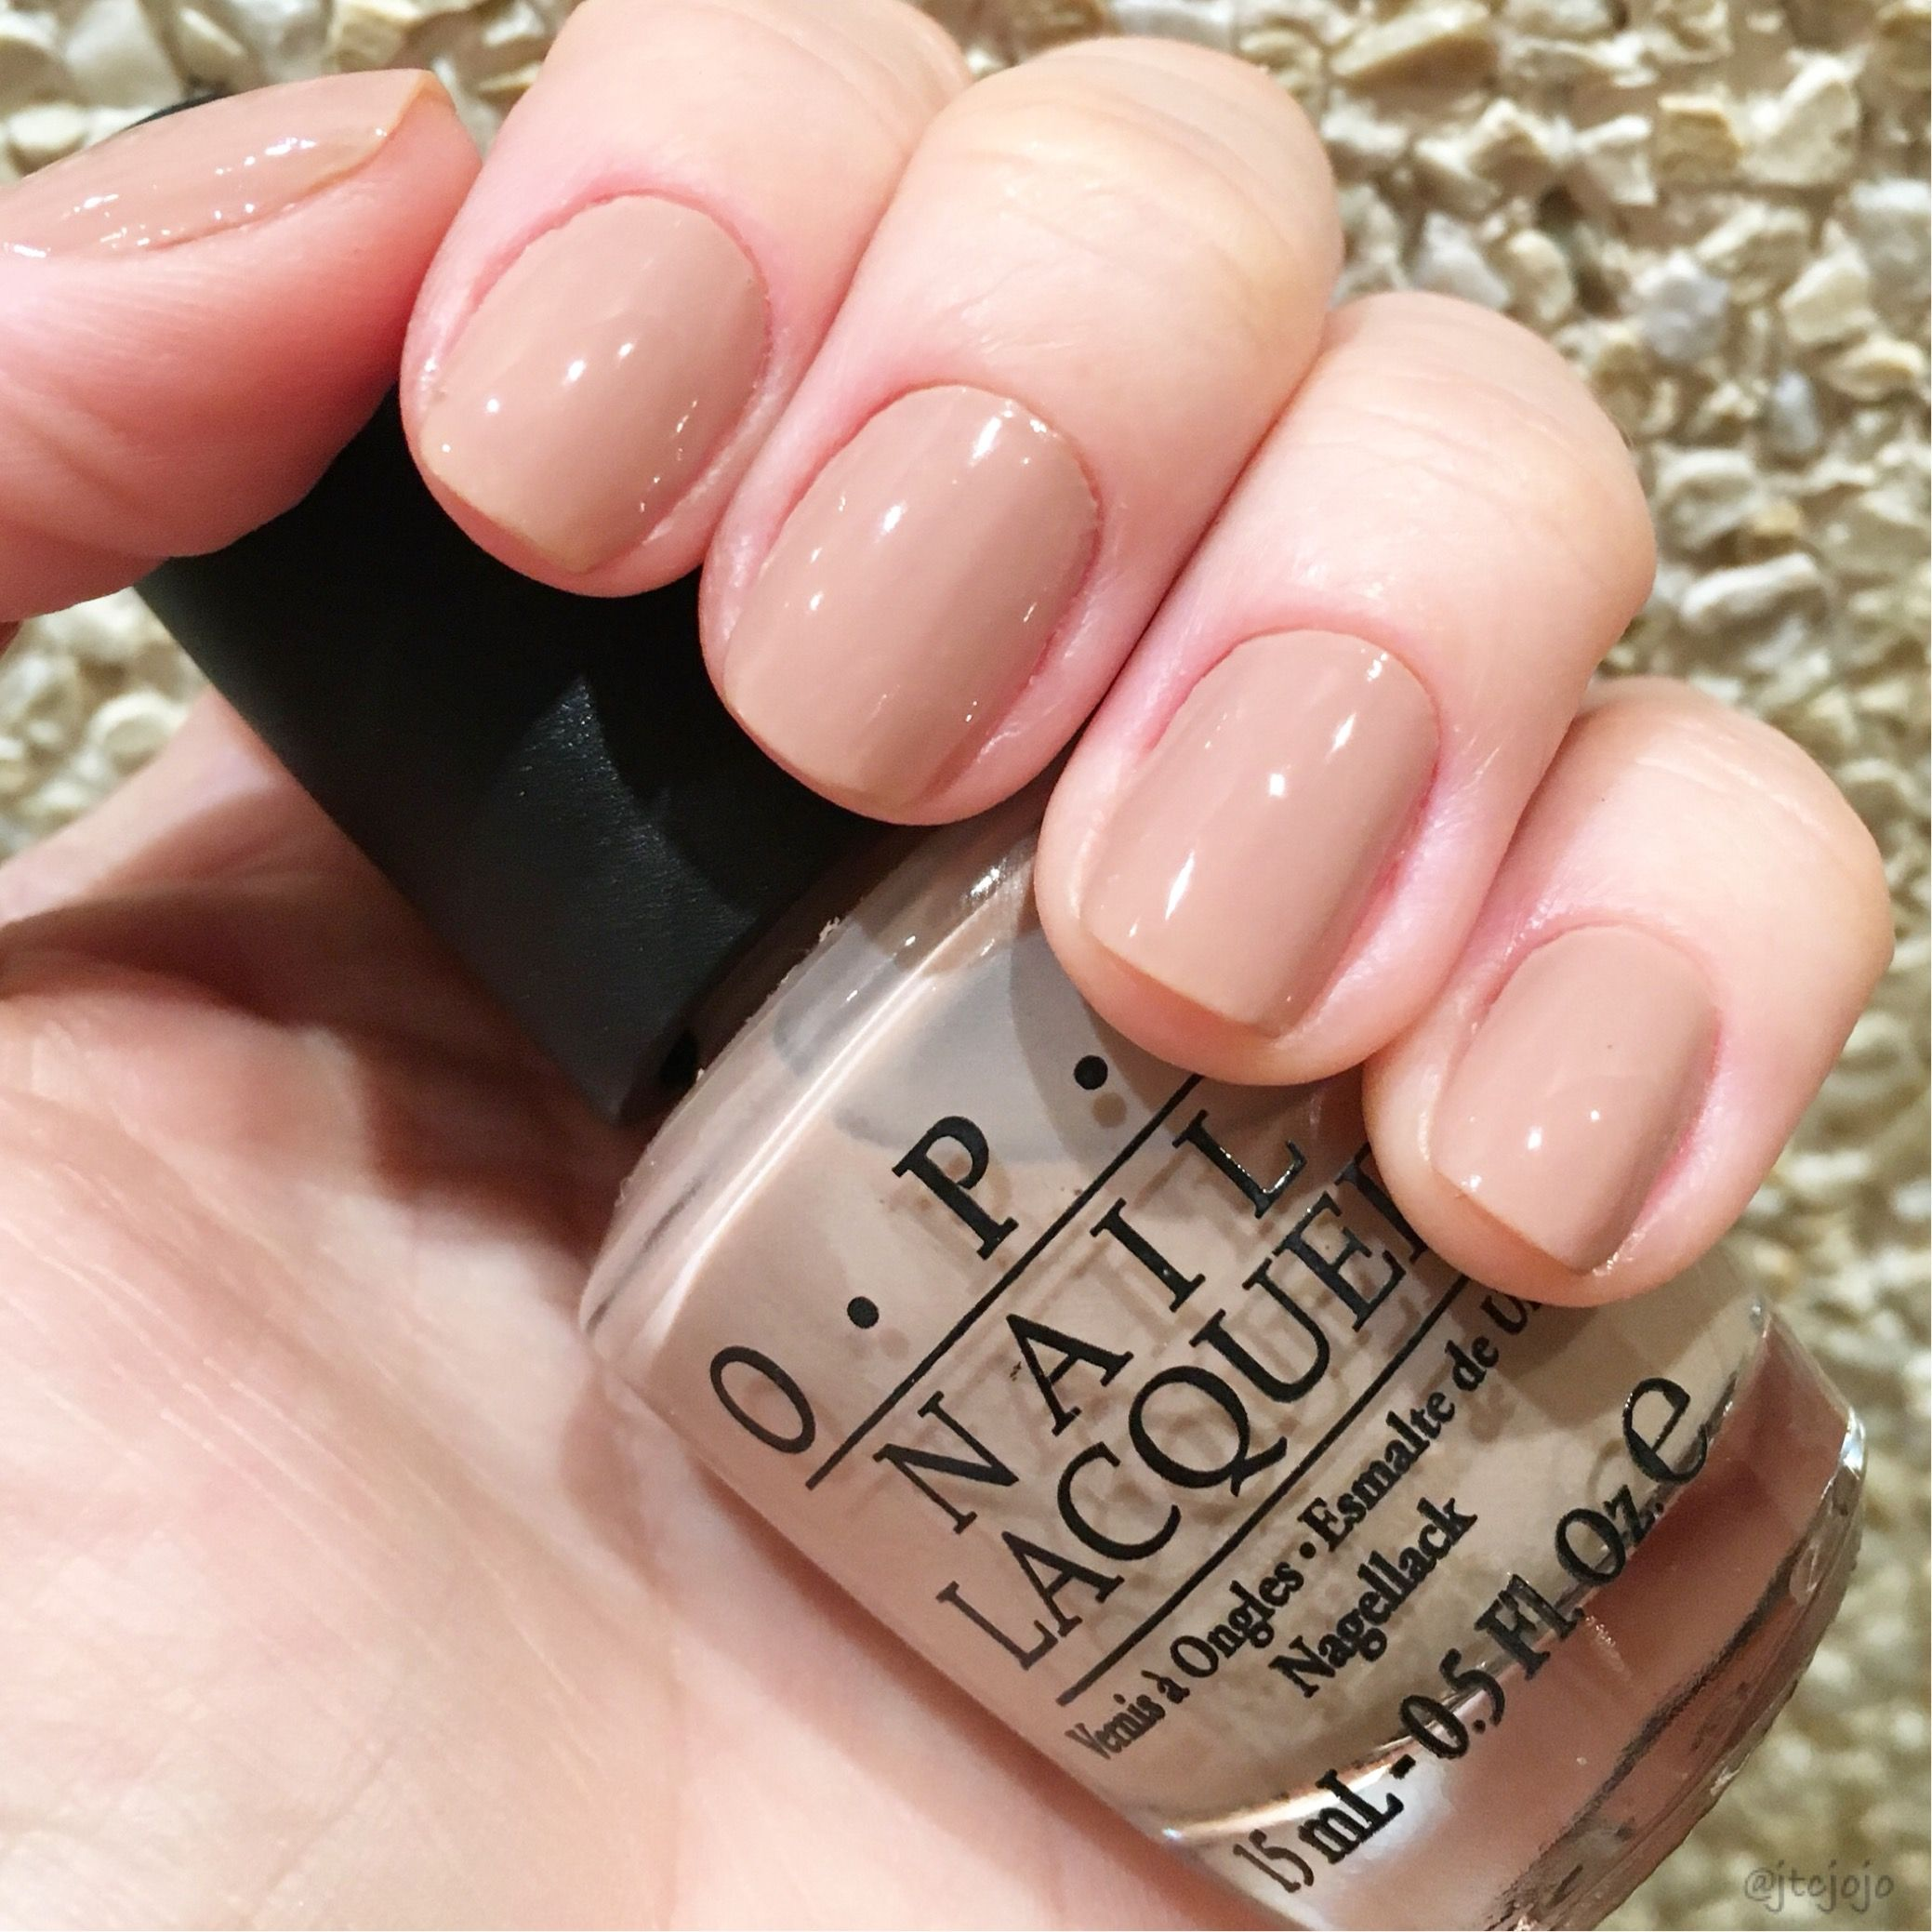 New favorite neutral polish OPI - Tickle My France-y in